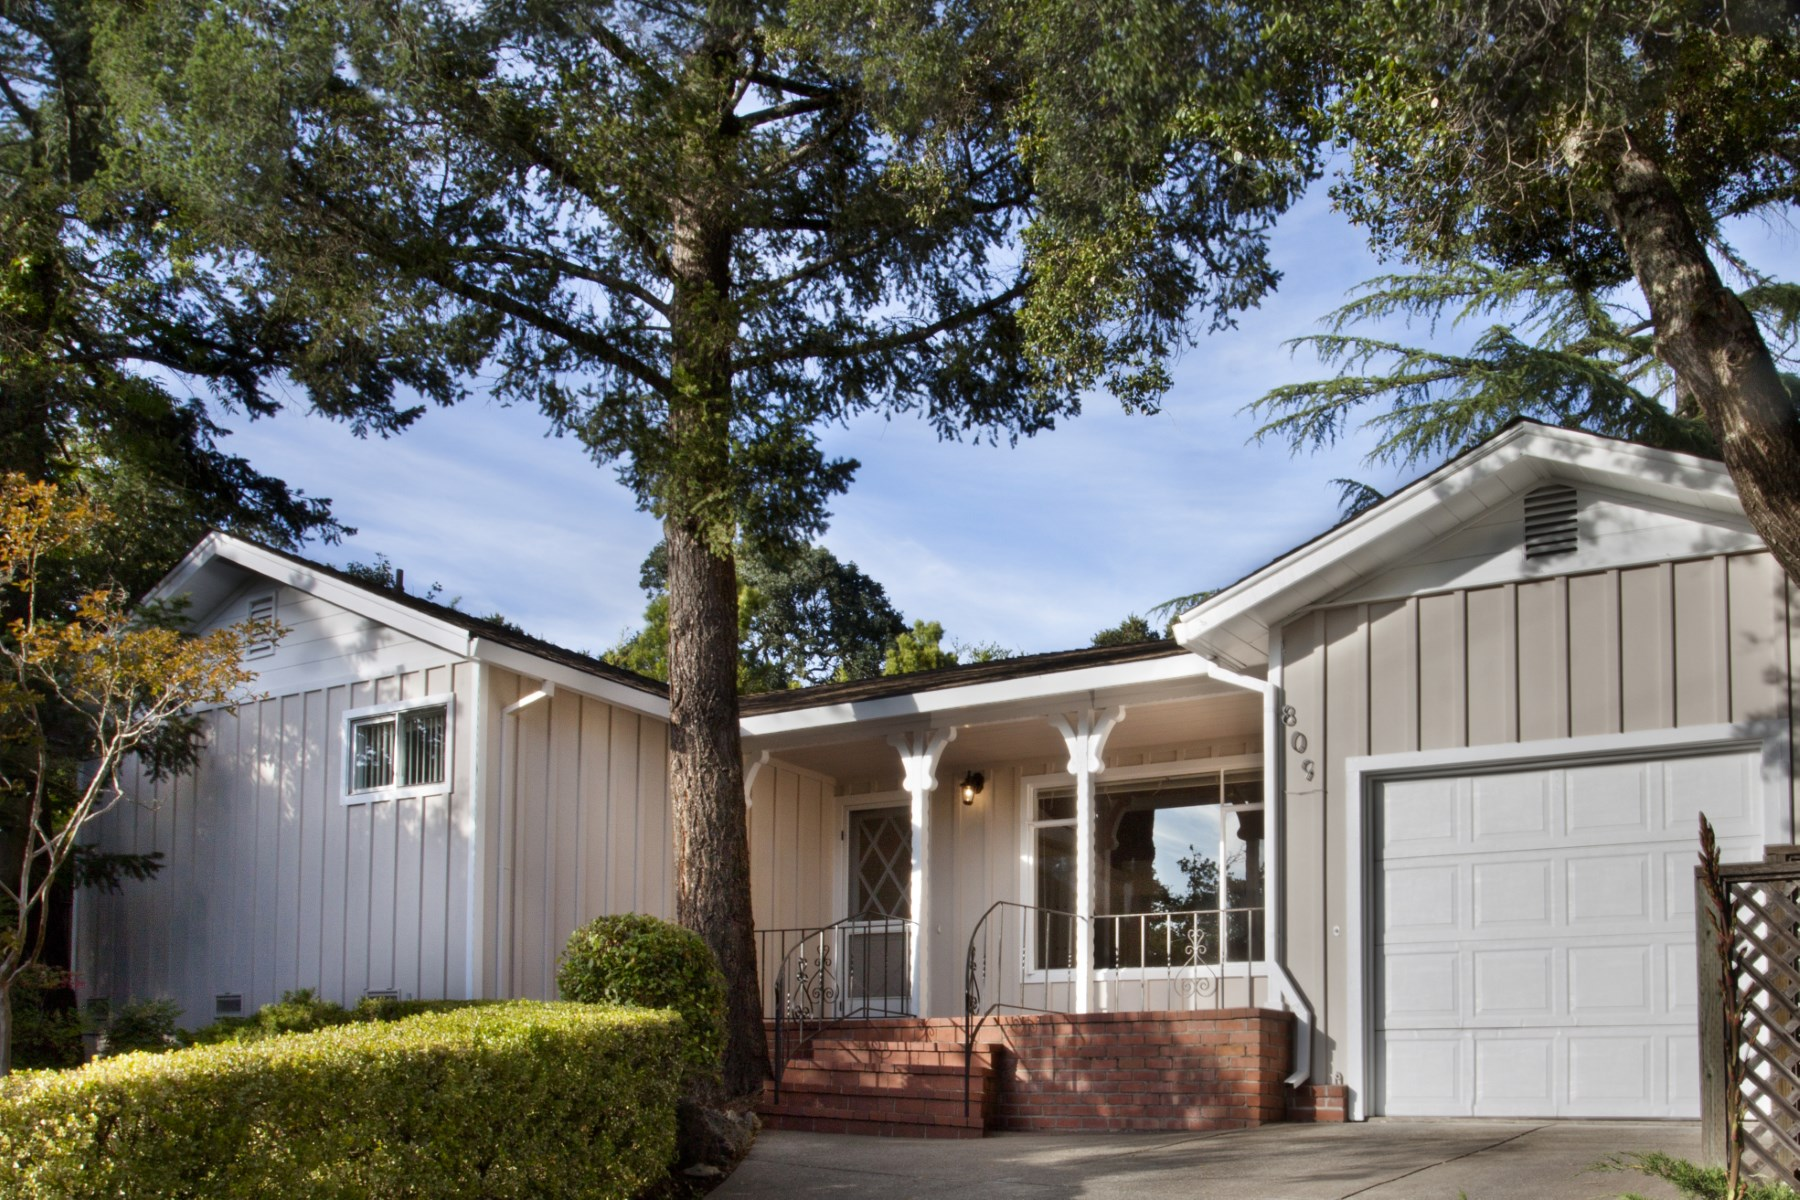 Other Residential for Sale at Two Homes, Sonoma 809-811 Central Ave. Sonoma, California, 95476 United States